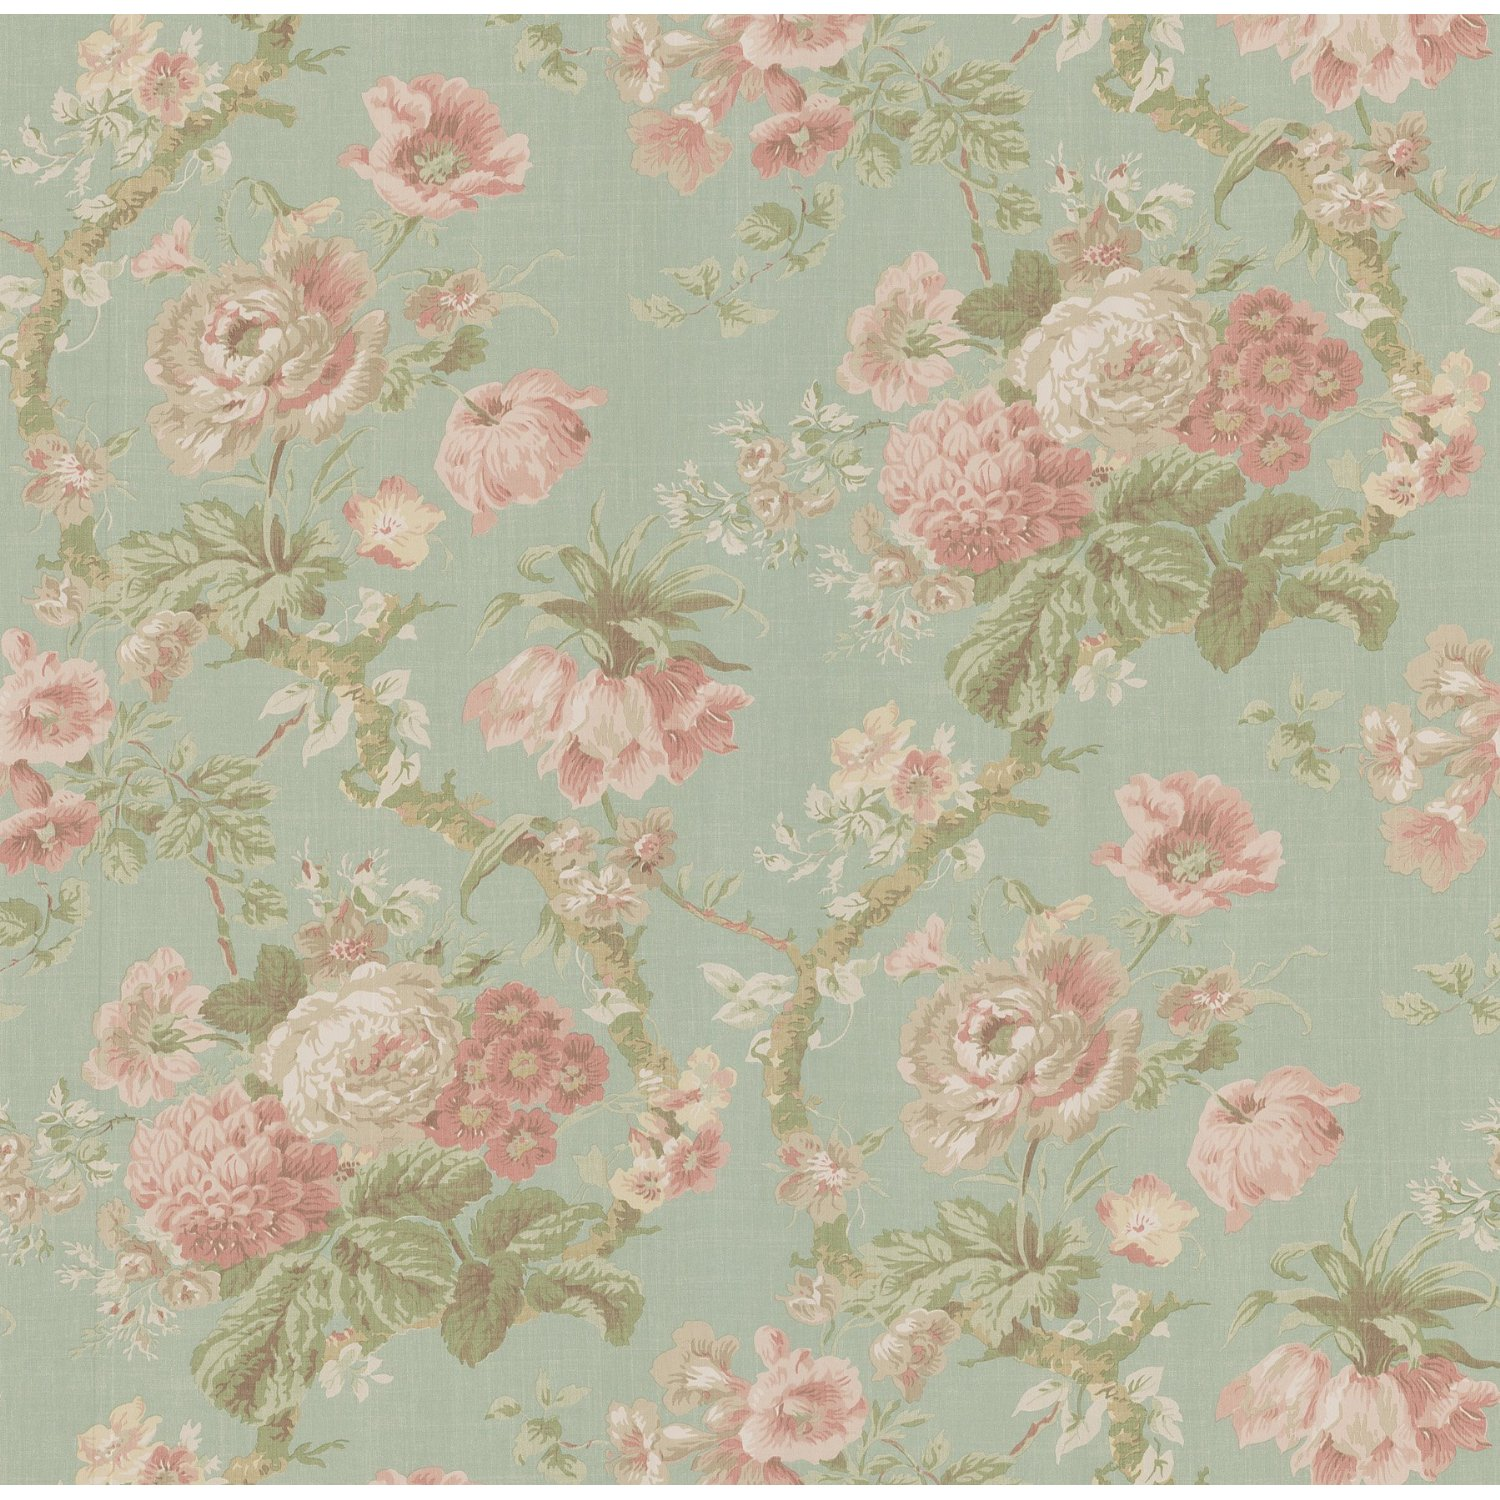 Free Download Vintage And Came Up With This Vintage Floral